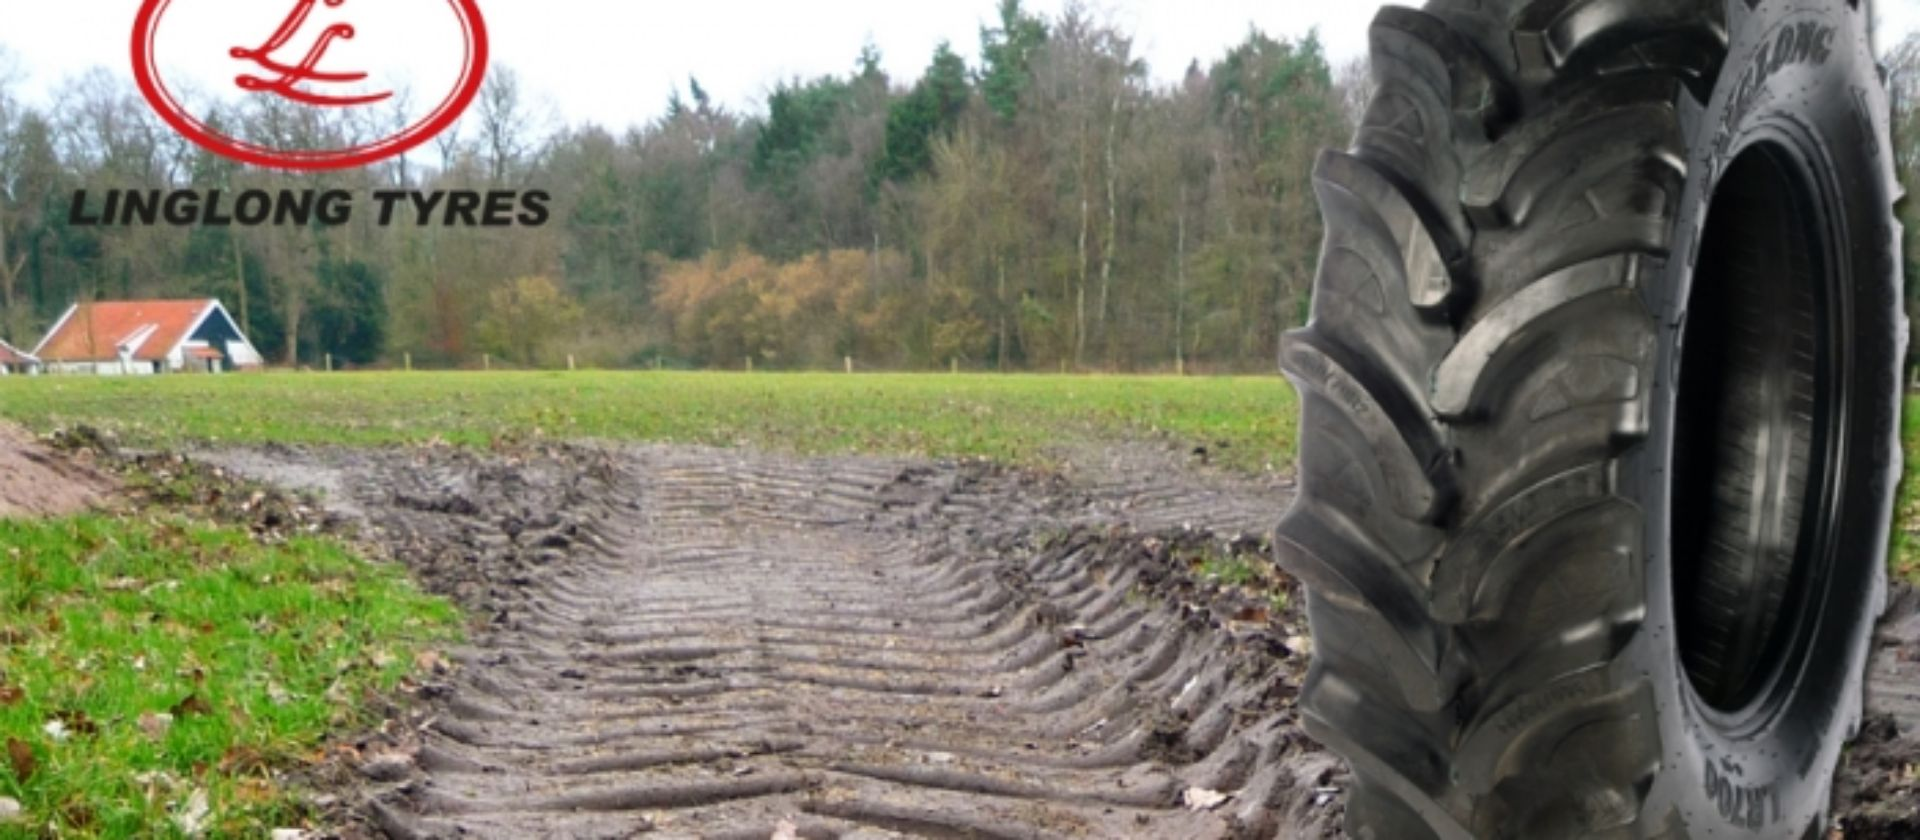 Heuver Tyrewholesale obtains exclusive European import rights for new agricultural tyres